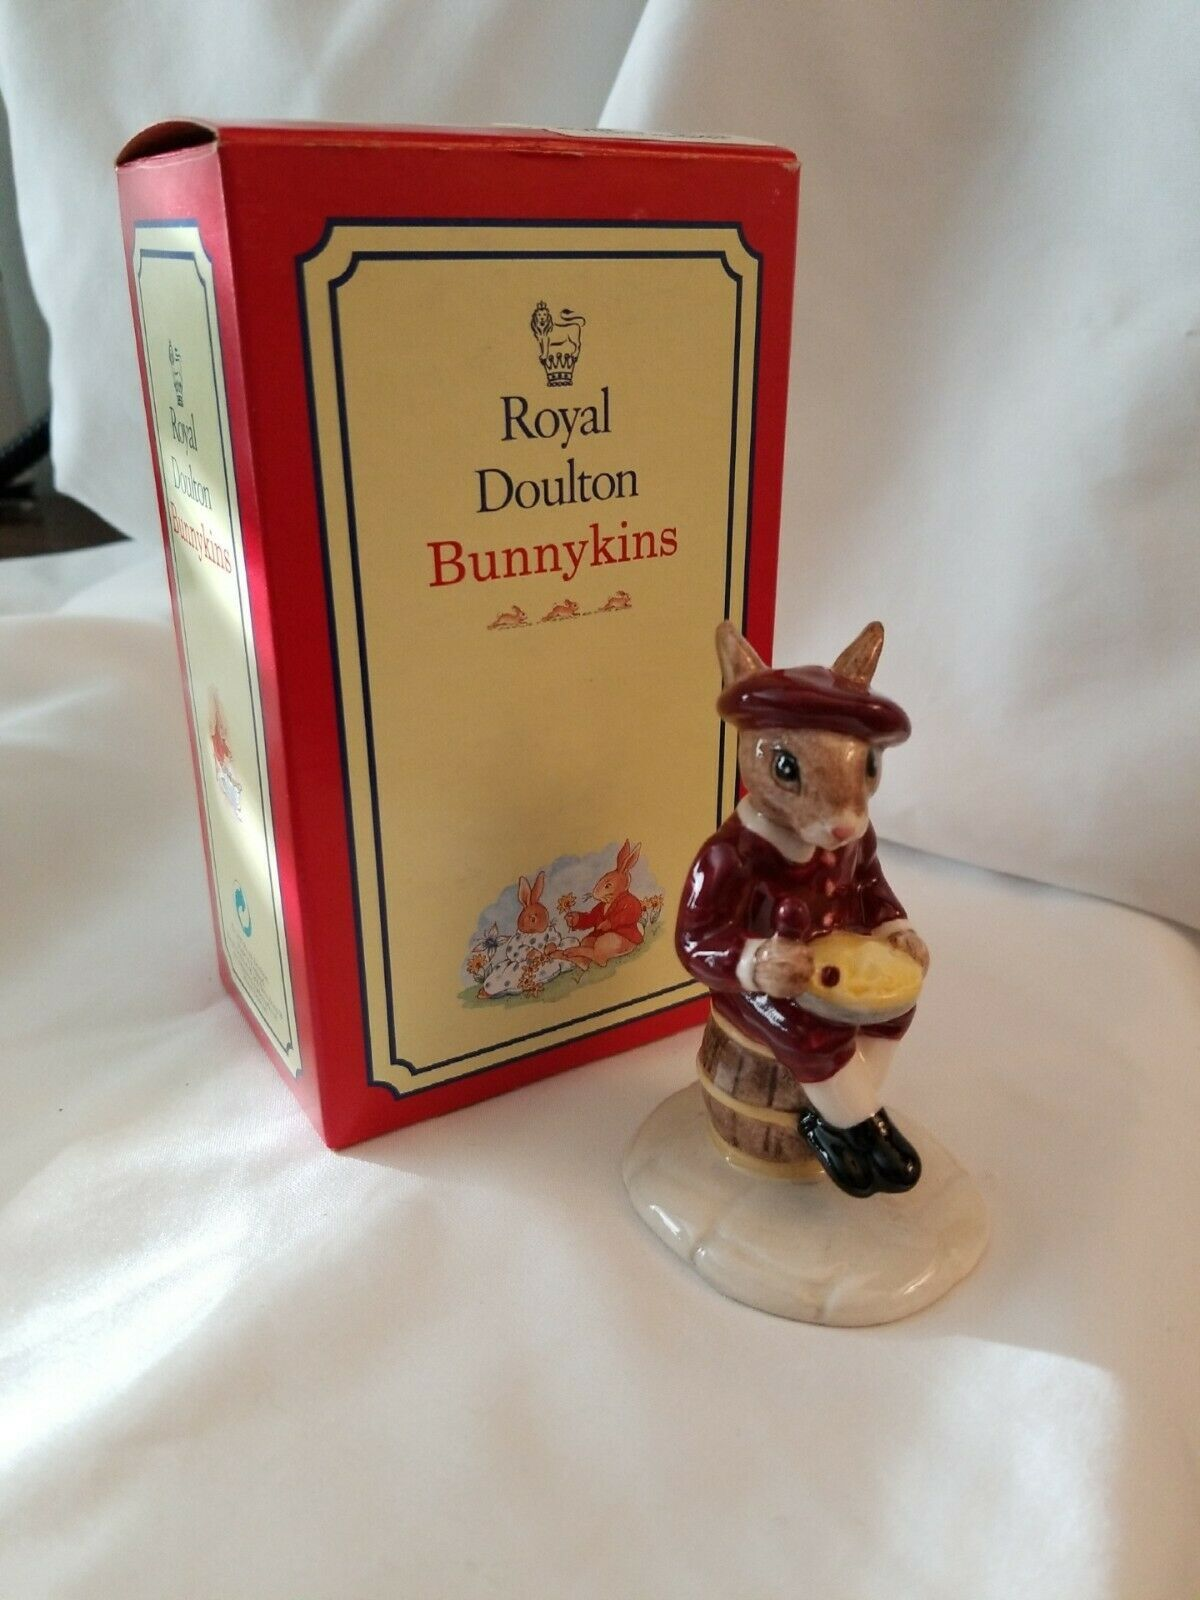 Royal Doulton Bunnykins Little Jack Horner DB221 With original box